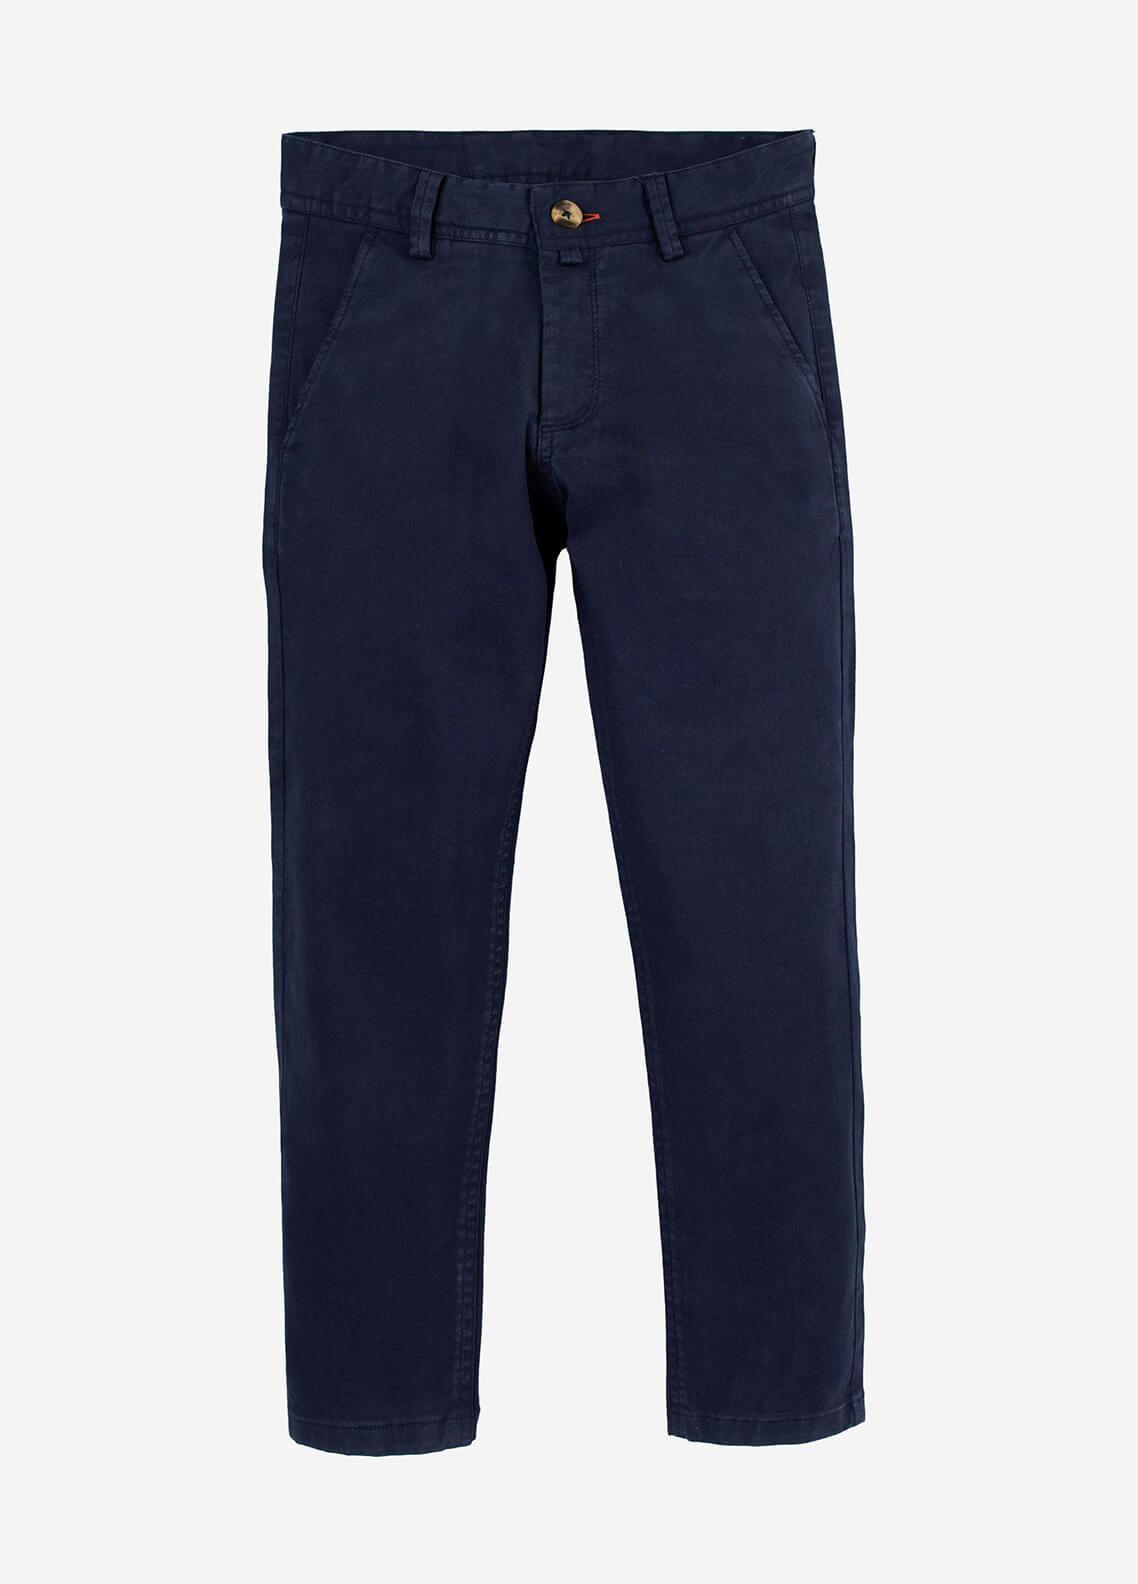 Brumano Cotton Casual Trousers for Boys -  BRM-555-Navy